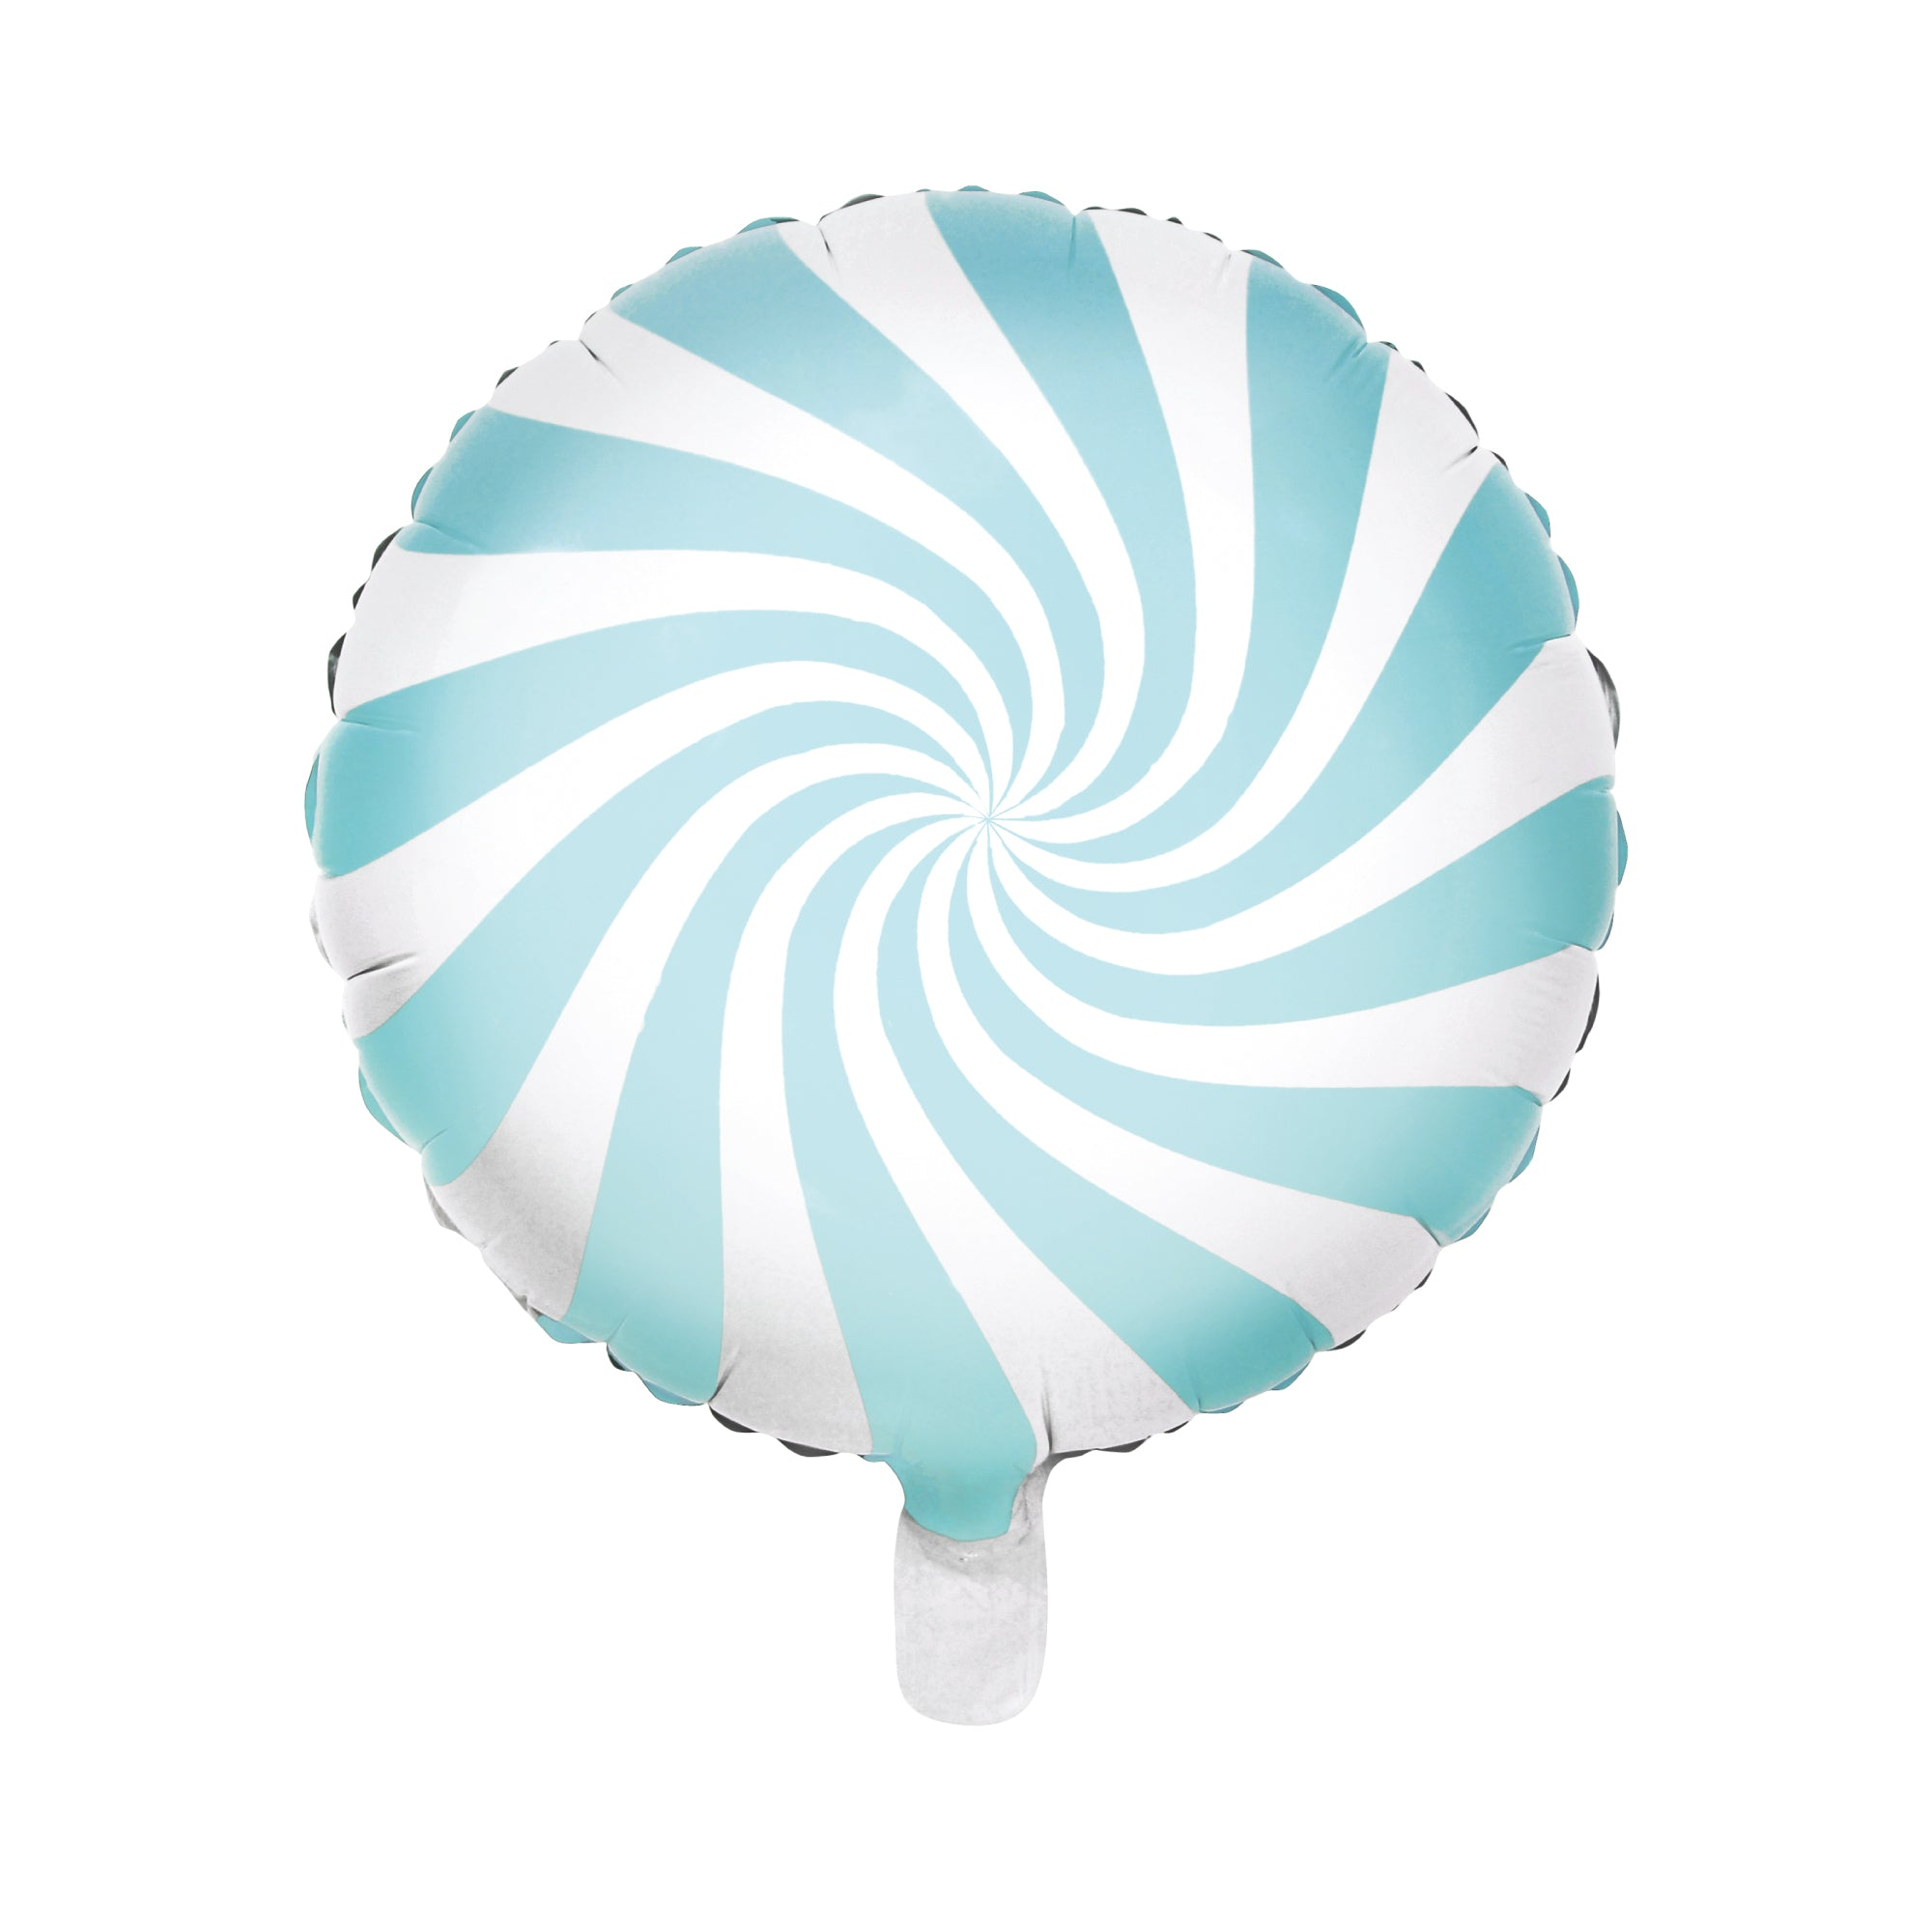 Light Blue Swirly Lollipop Foil Balloon 18"